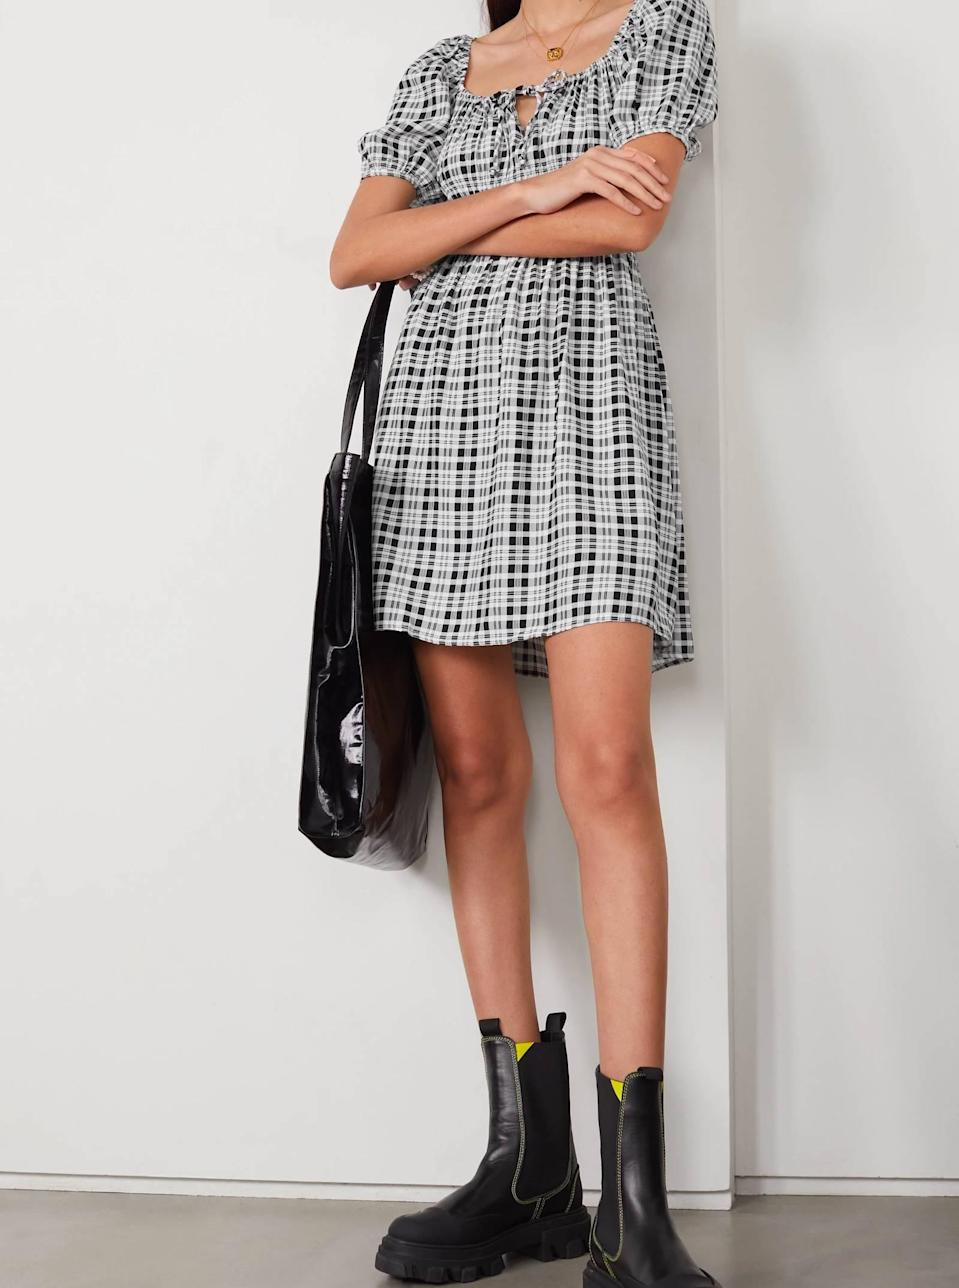 """Even though Faithfull the Brand is known for its frilly, dainty aesthetic—this plaid mini dress is serving approachable grunge vibes we're here for year-round. $169, Net-a-Porter. <a href=""""https://www.net-a-porter.com/en-us/shop/product/faithfull-the-brand/clothing/mini-dresses/-net-sustain-francis-checked-crepe-mini-dress/2204324138977246"""" rel=""""nofollow noopener"""" target=""""_blank"""" data-ylk=""""slk:Get it now!"""" class=""""link rapid-noclick-resp"""">Get it now!</a>"""